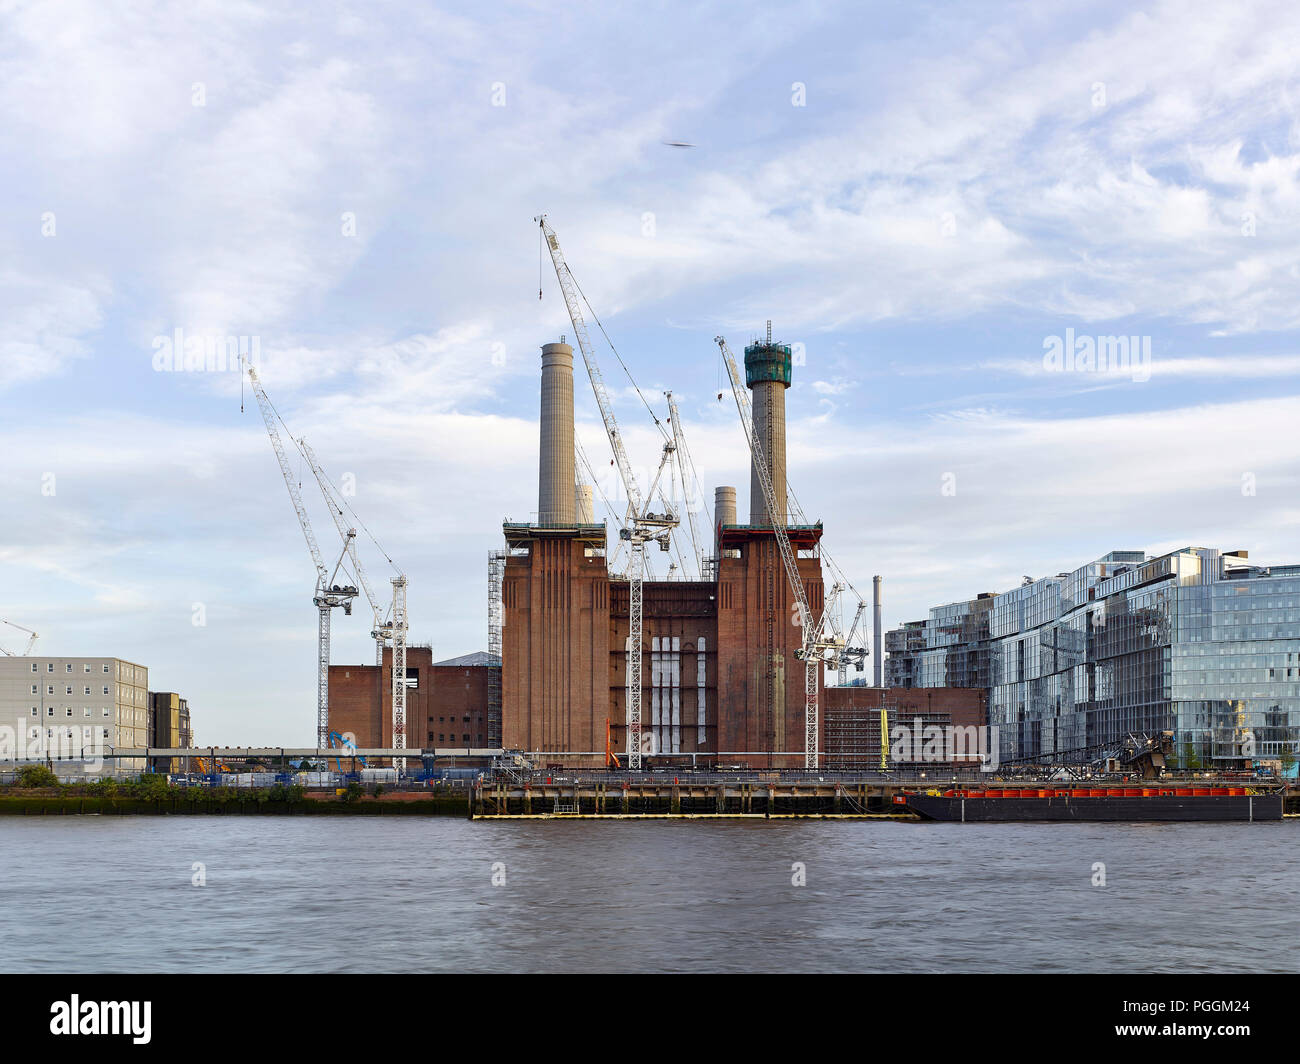 View across Thames. Battersea Power Station, under construction, London, United Kingdom. Architect: Sir Giles Gilbert Scott, 1953. - Stock Image